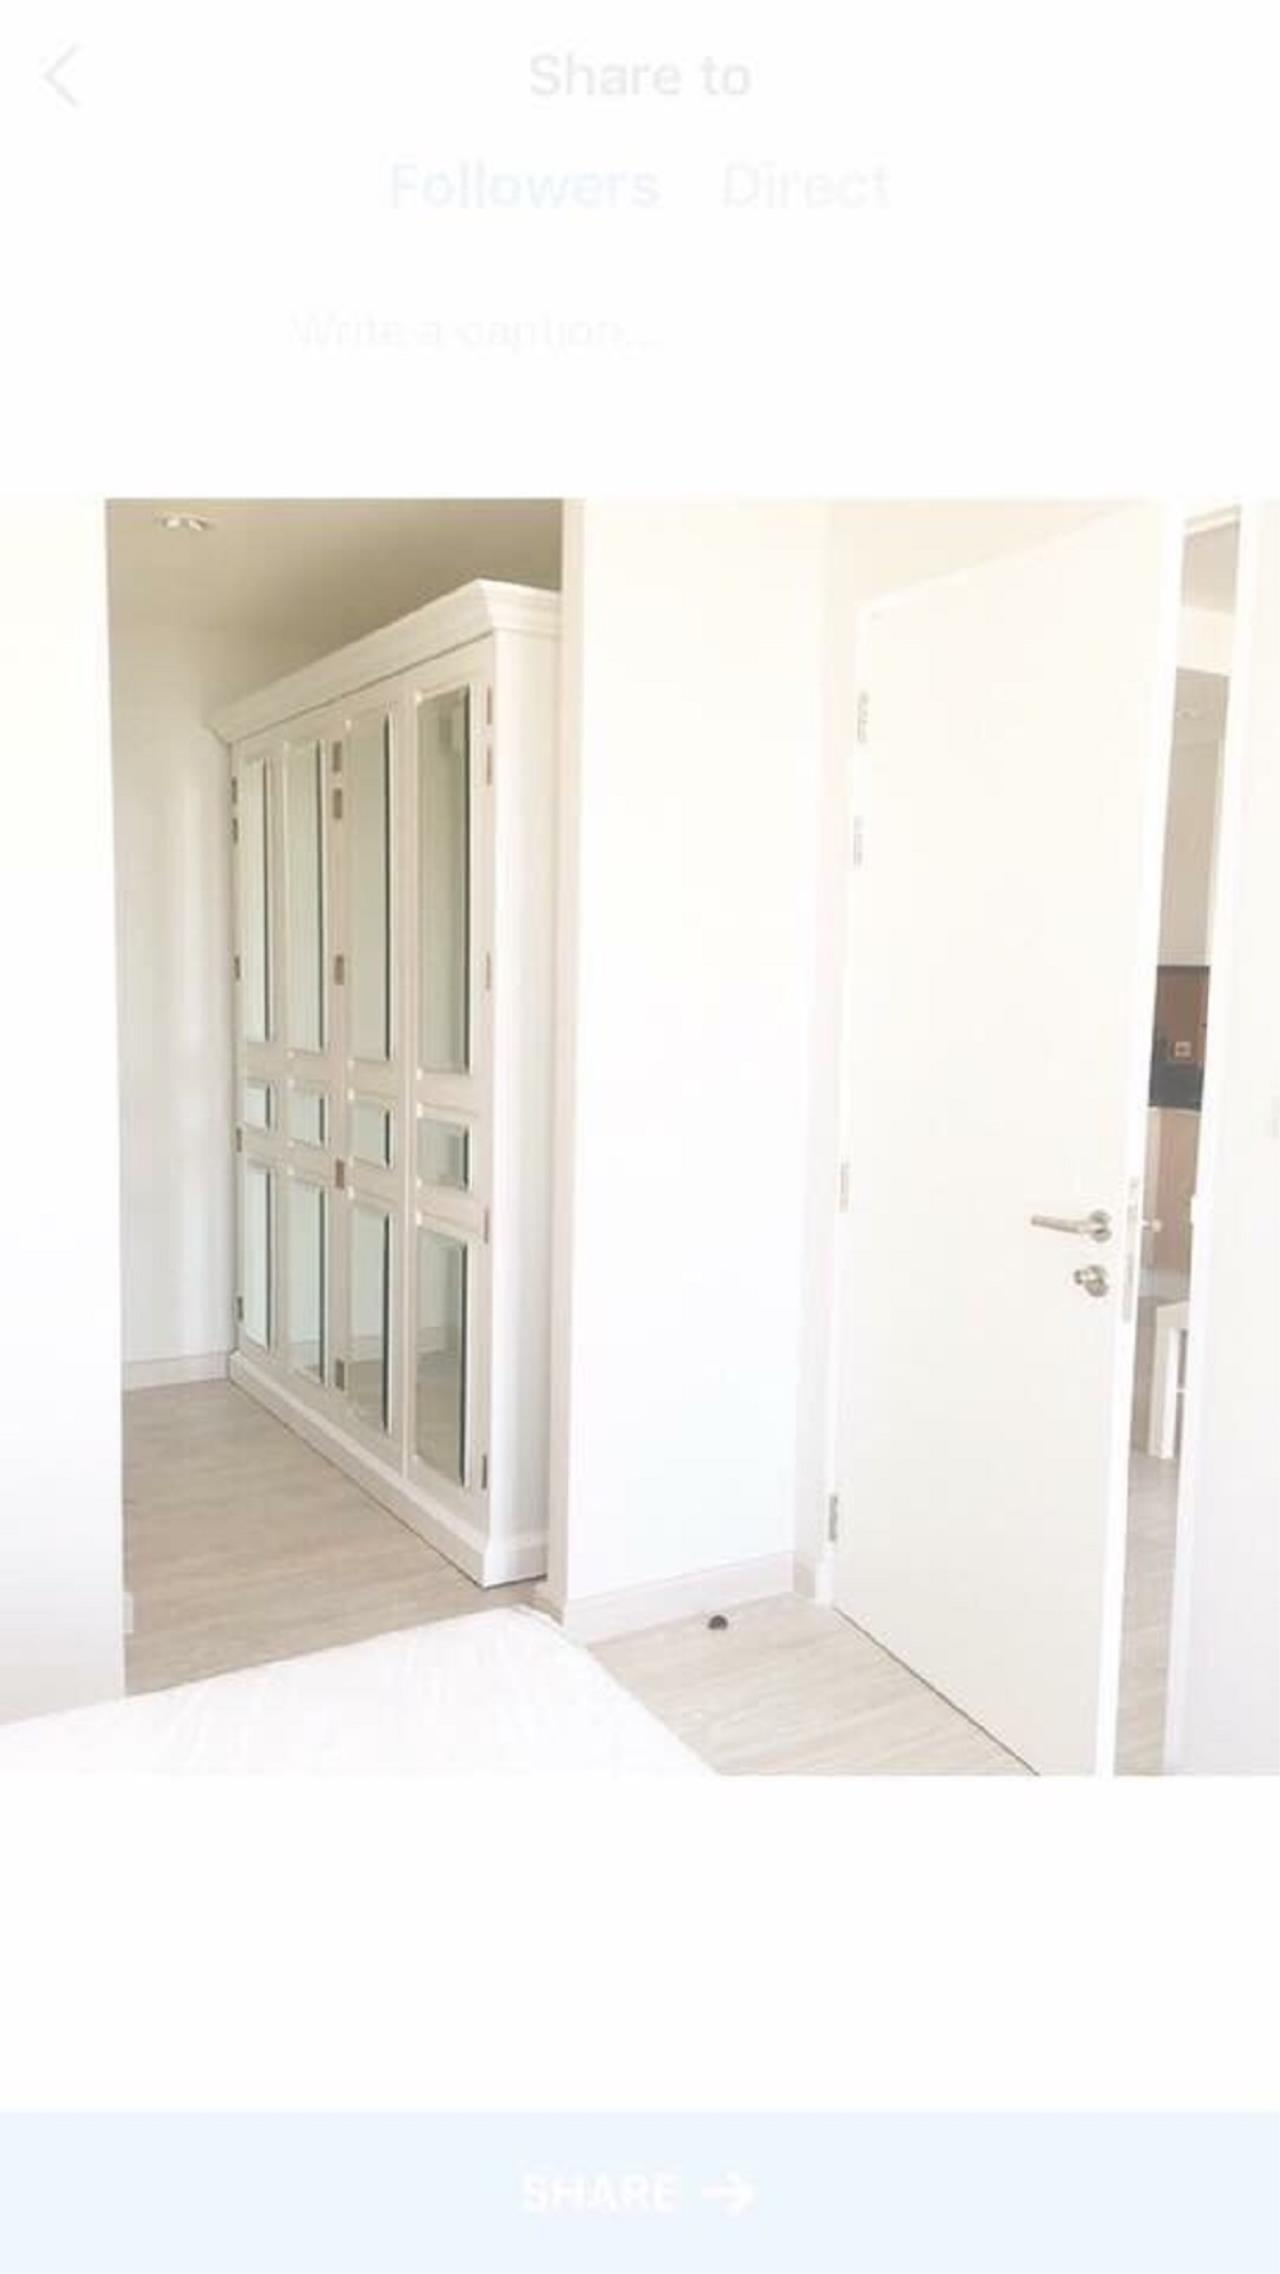 RE/MAX CondoDee Agency's Affordable Condo in Ekkamai - only 25k 5